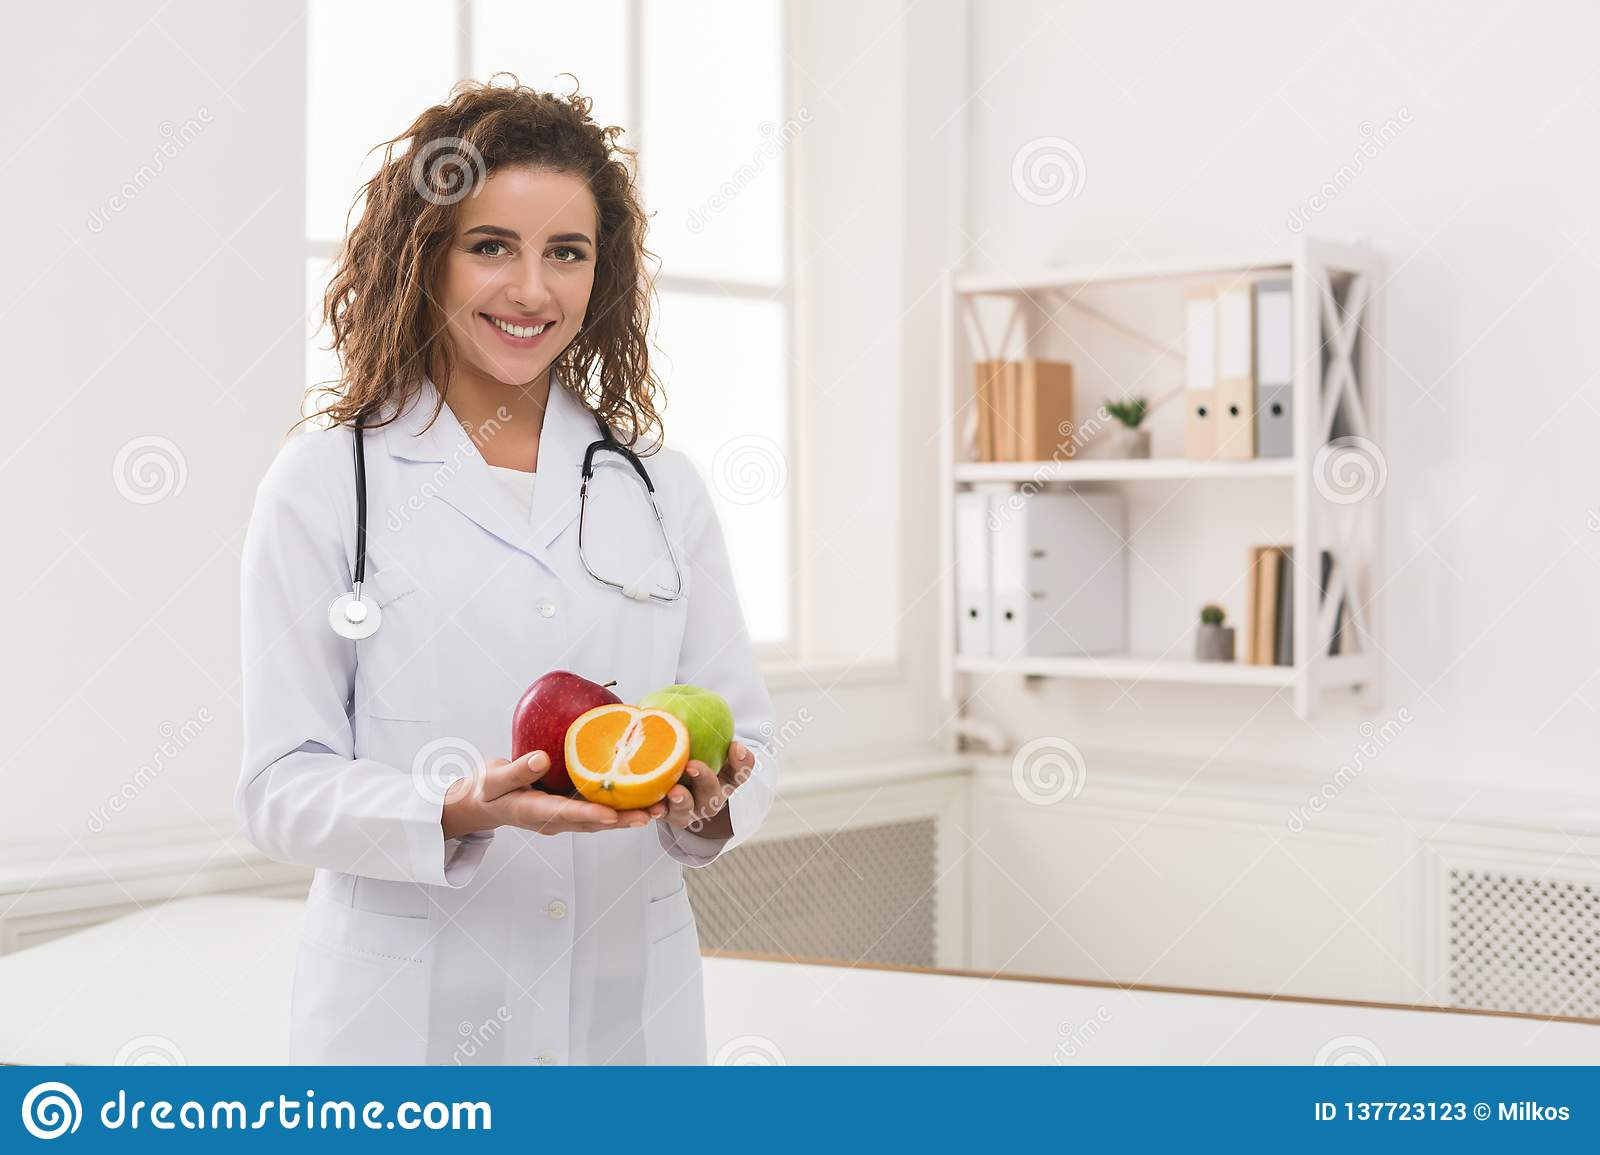 Friendly nutritionist holding fresh fruit, copy space